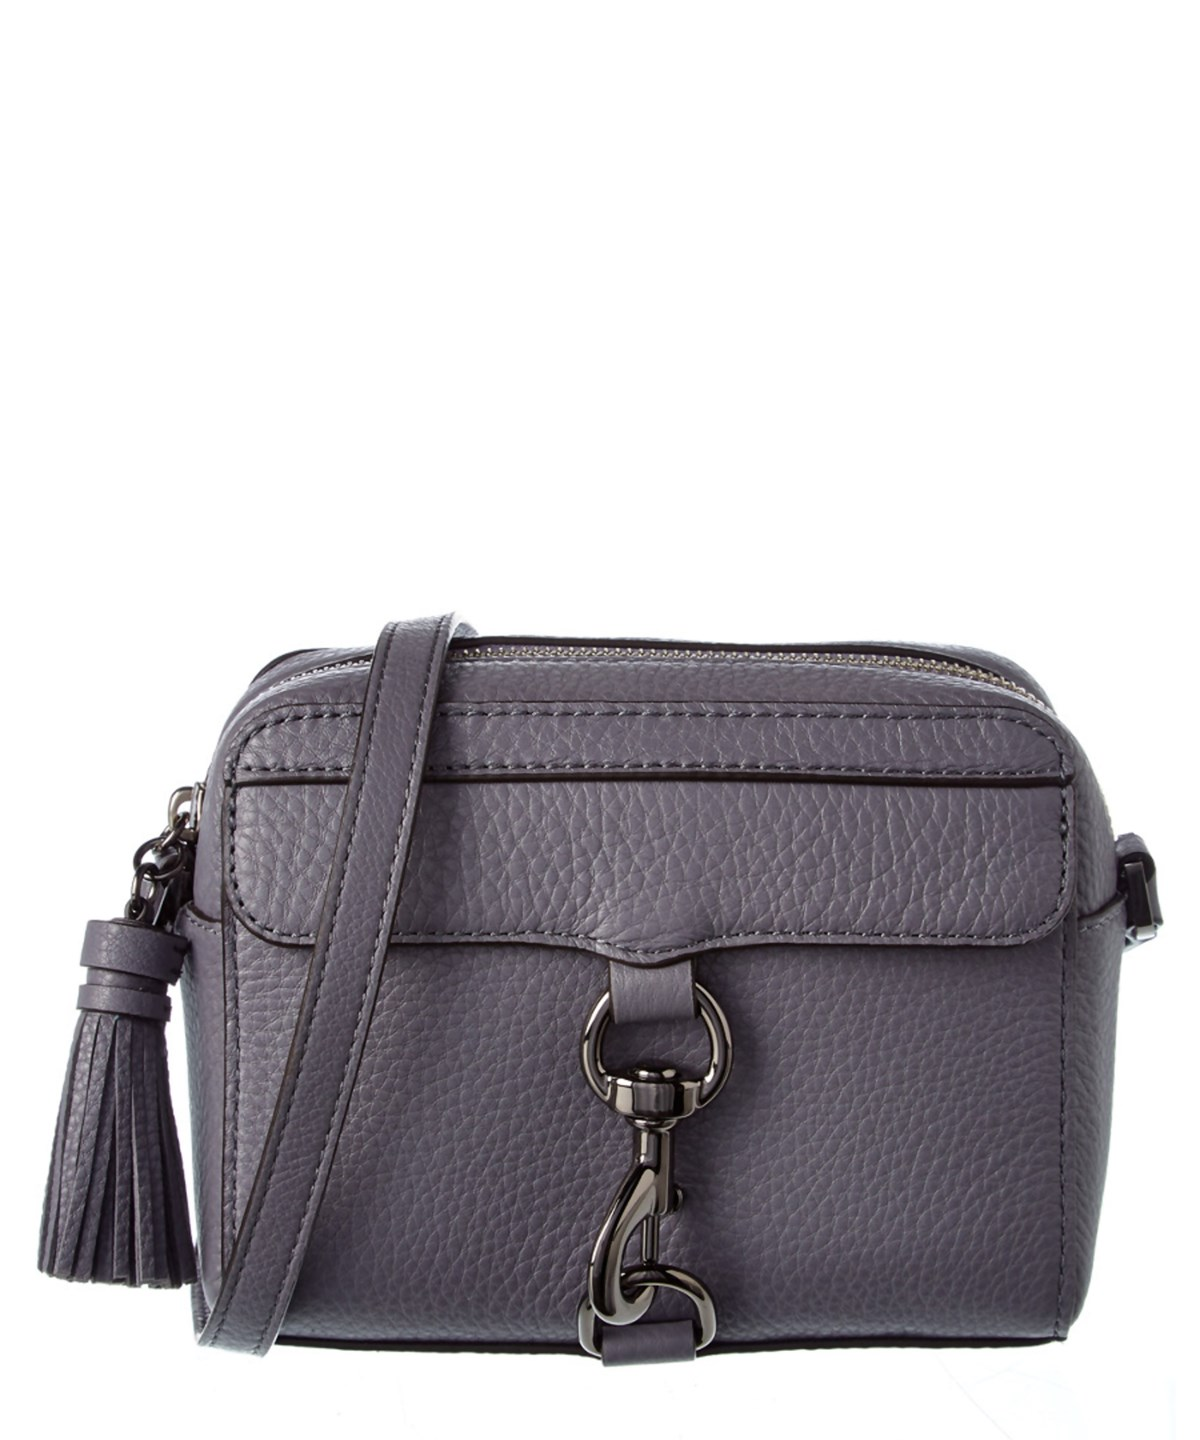 REBECCA MINKOFF Rebecca Minkoff Mab Leather Camera Bag' at Bluefly